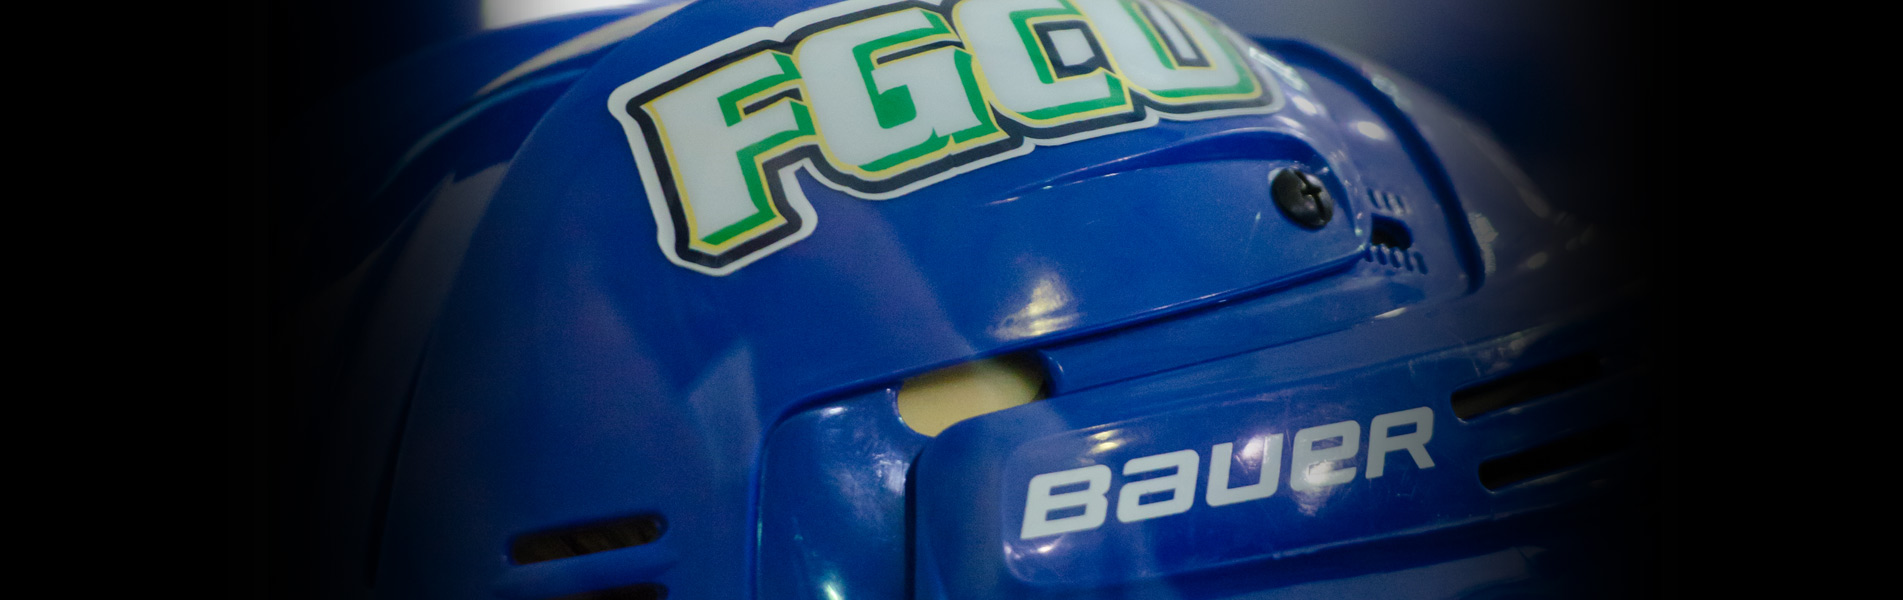 FGCU Hockey Club - helmet